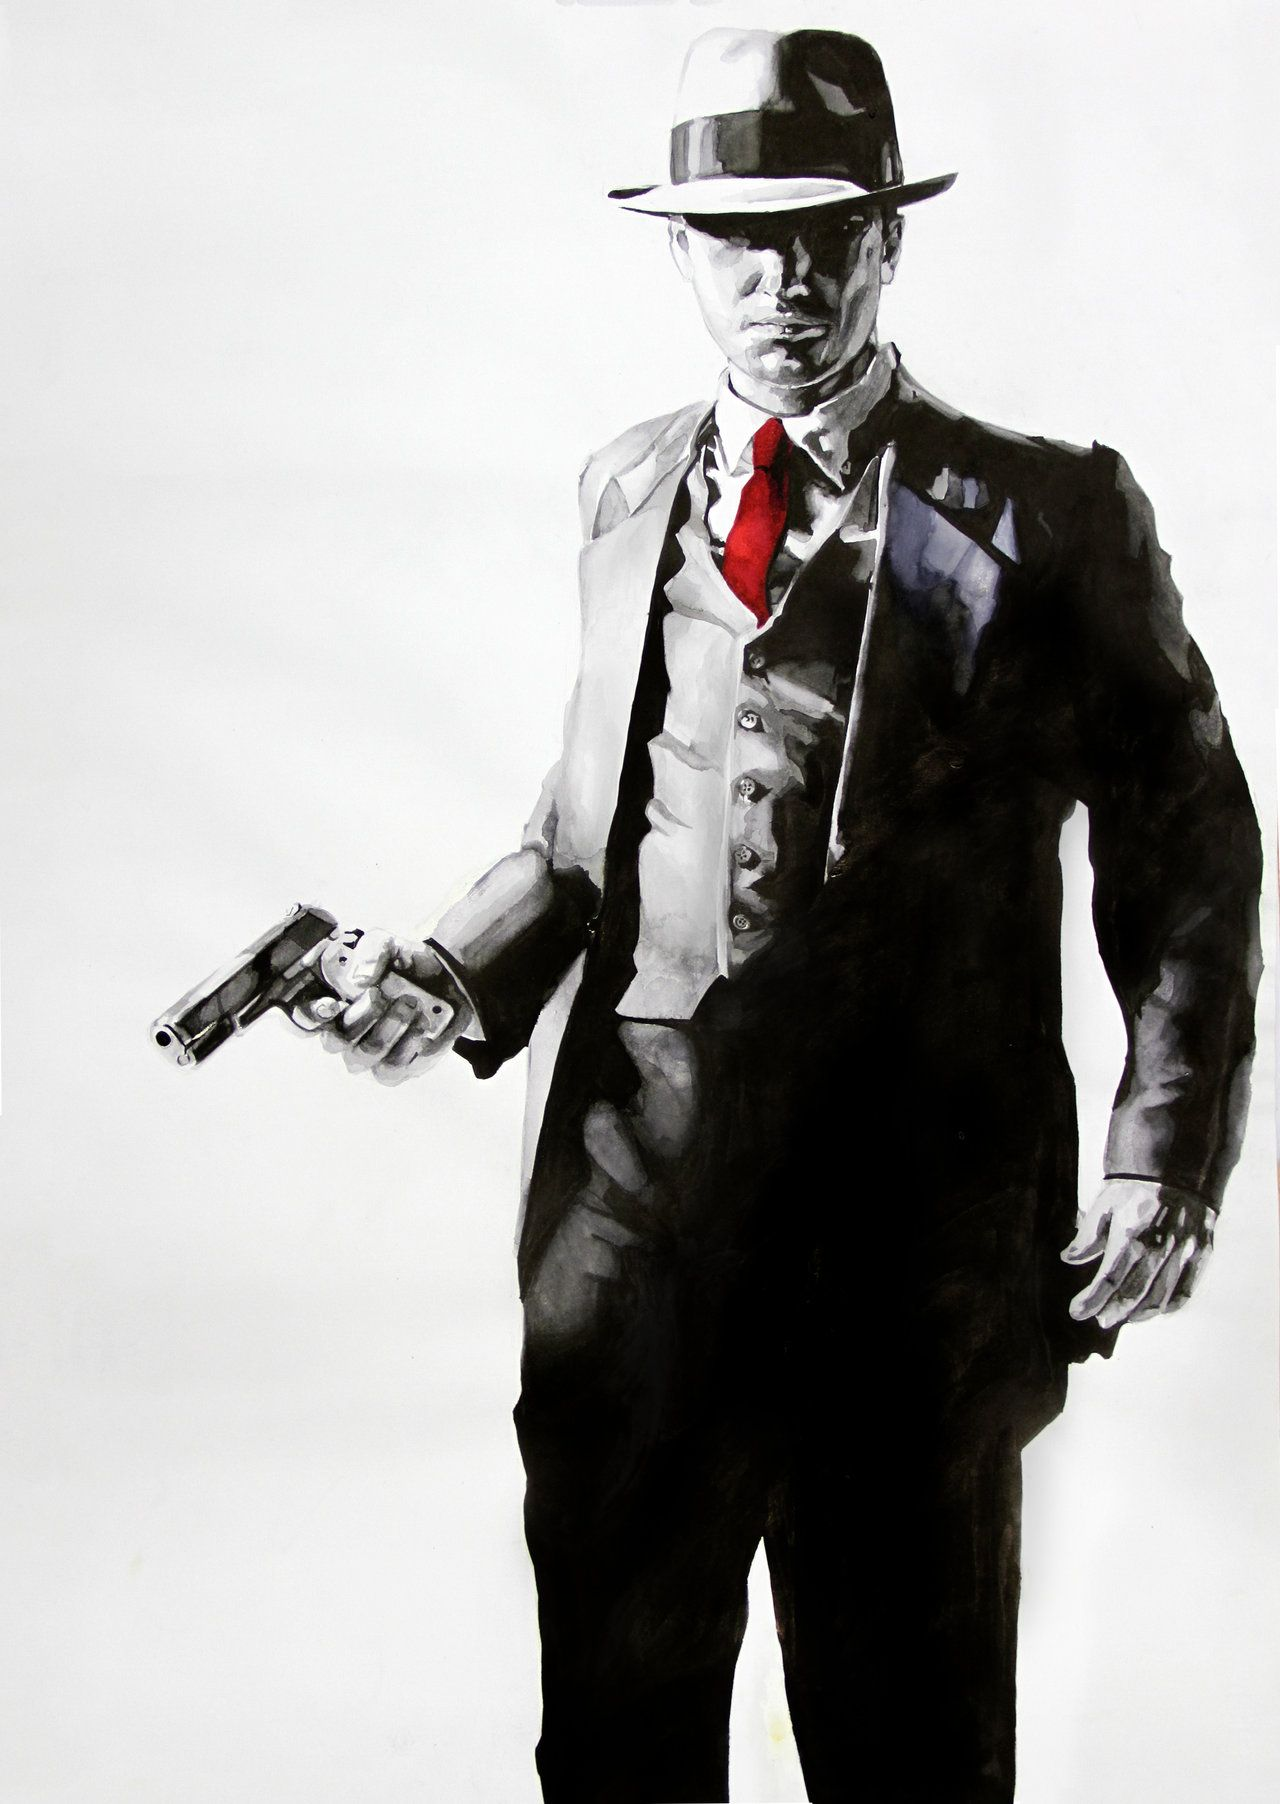 Video Game Artwork X Post R Imaginarygaming Mafia Gangster